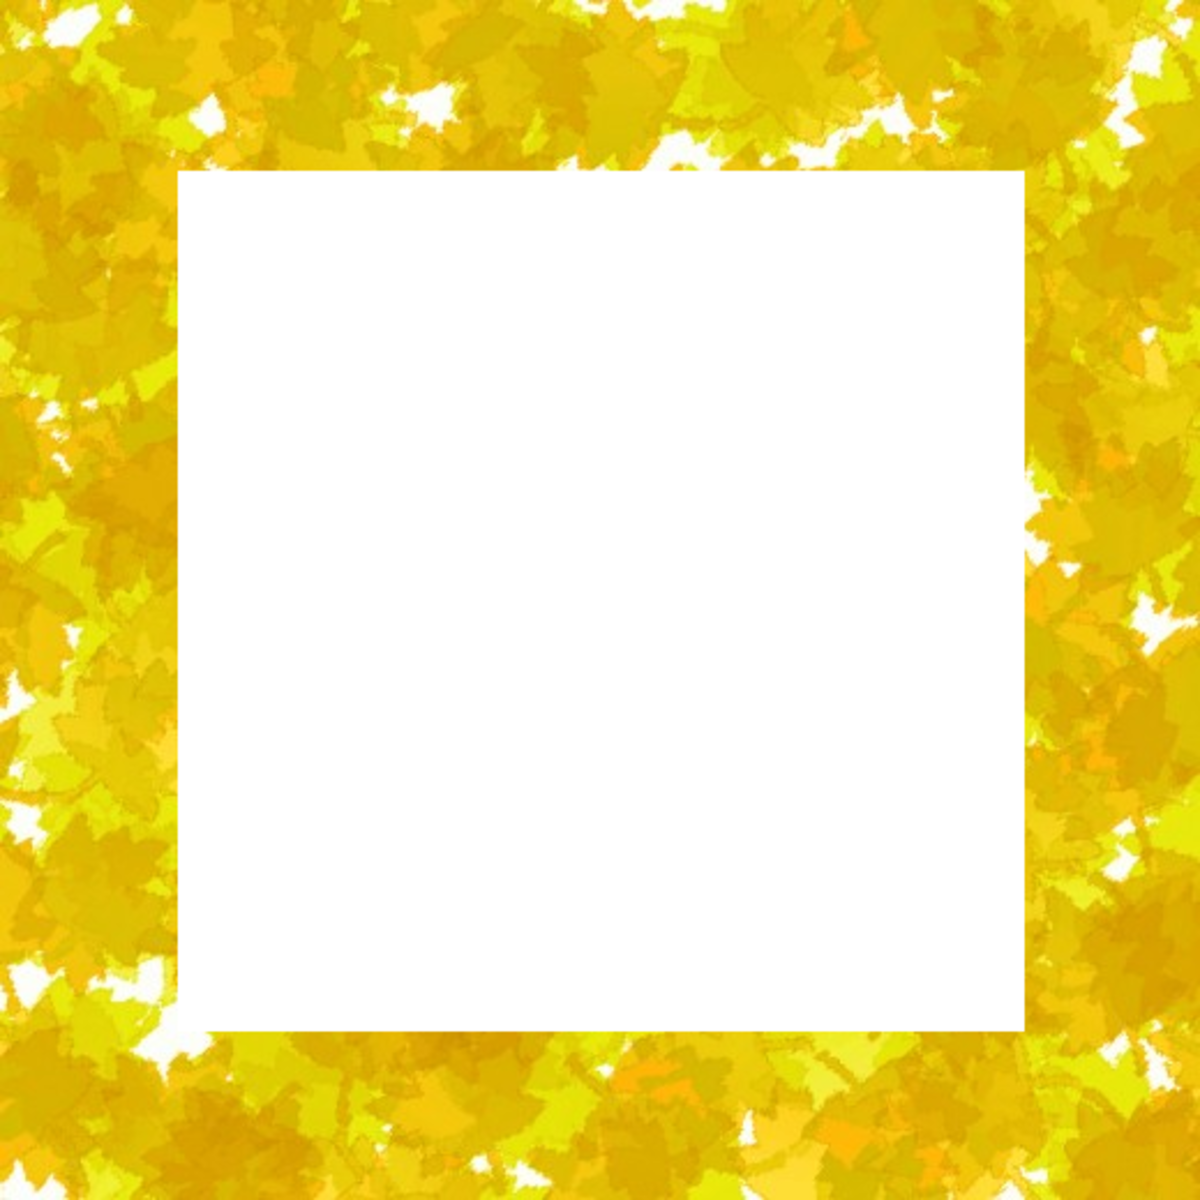 Yellow fall leaves clipart frame.